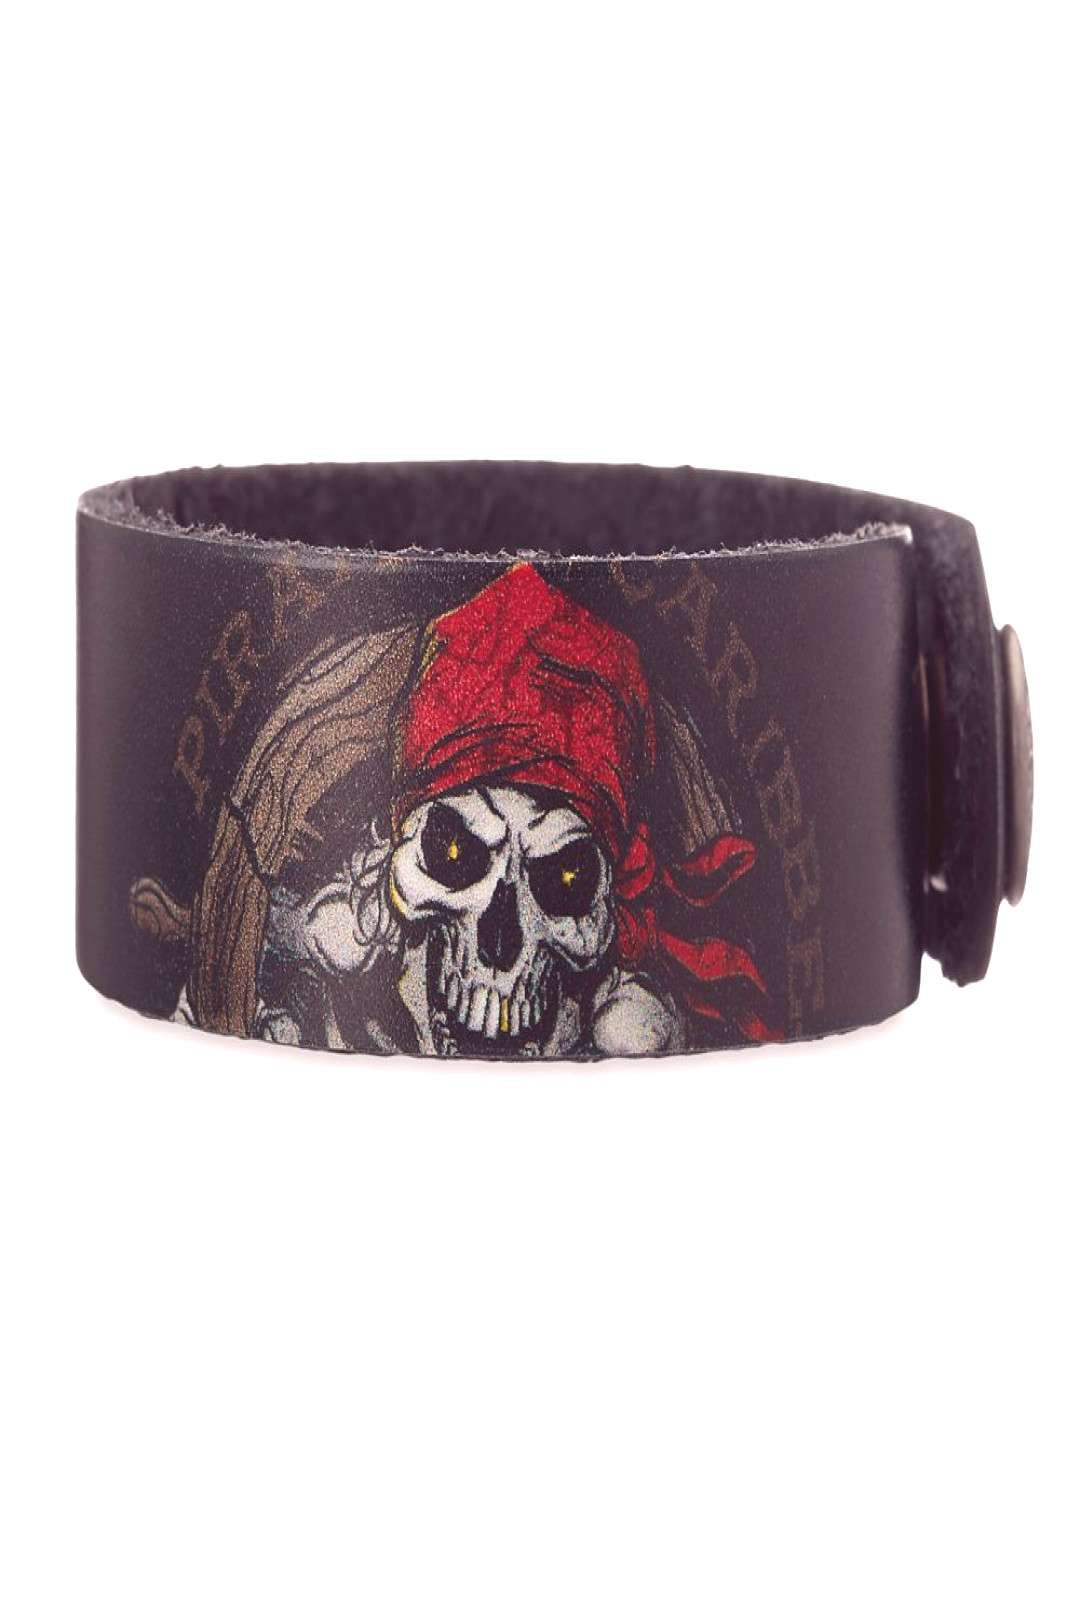 Pirates of the Caribbean Leather Bracelet - Personalizable shopDisney